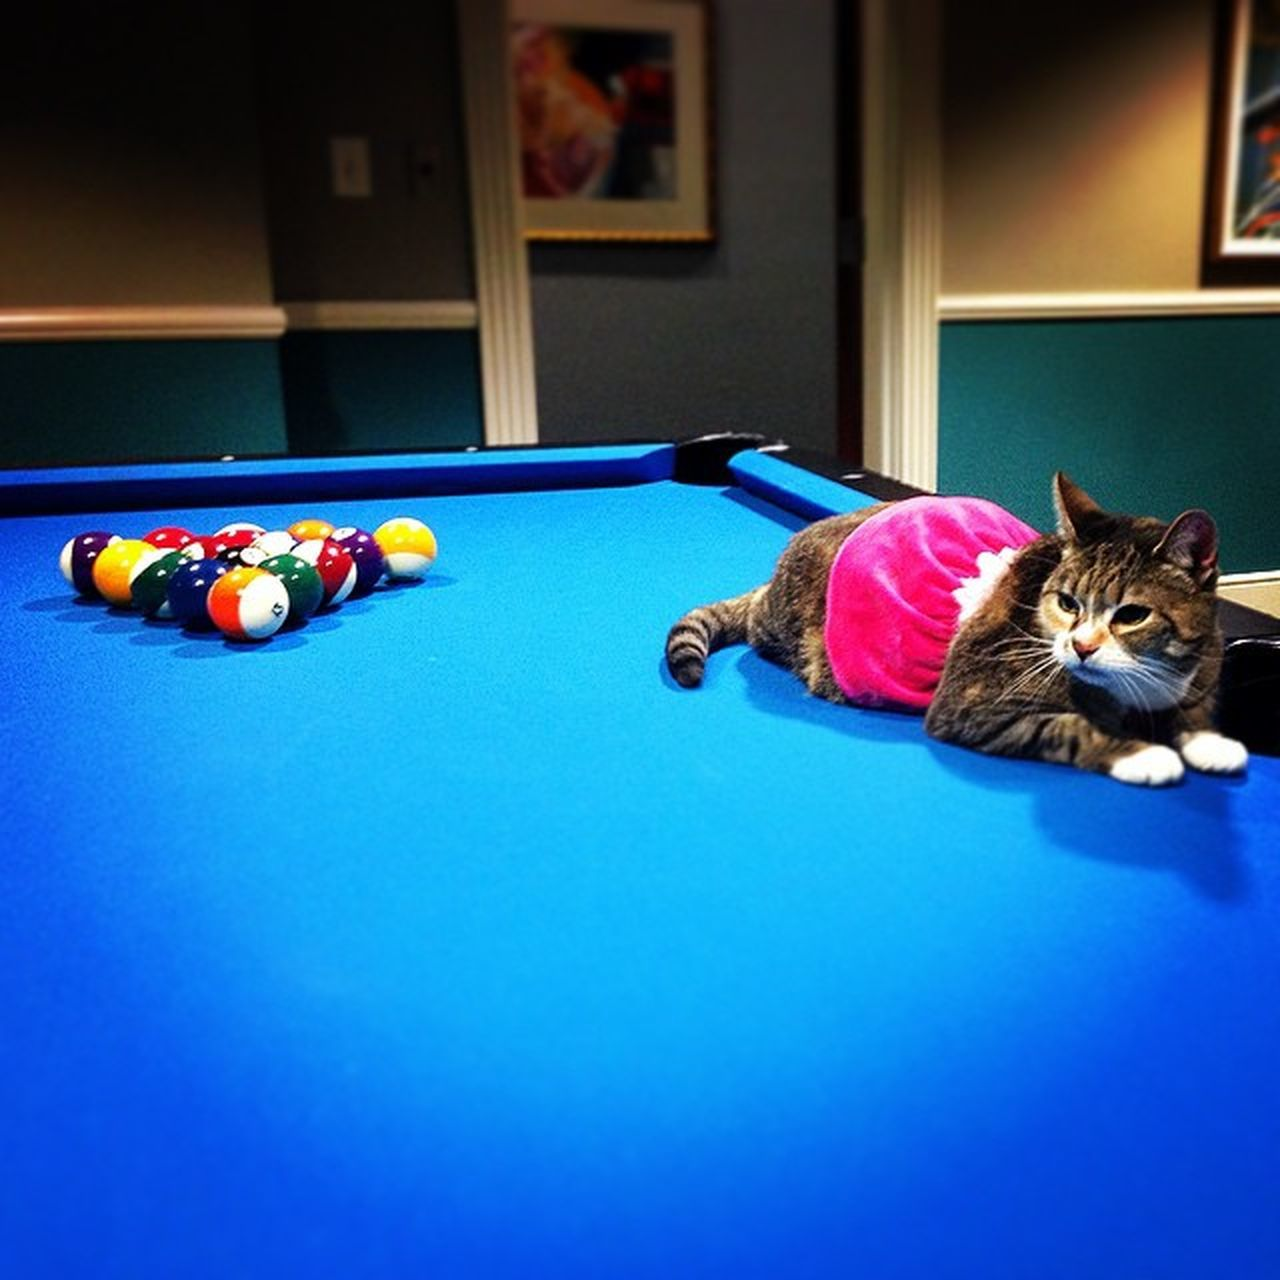 I scratched? Everybodylovesprincess Poolcat Princesshustler Catsofinstagram @lacie_wall @greg1gb @vic_thexton